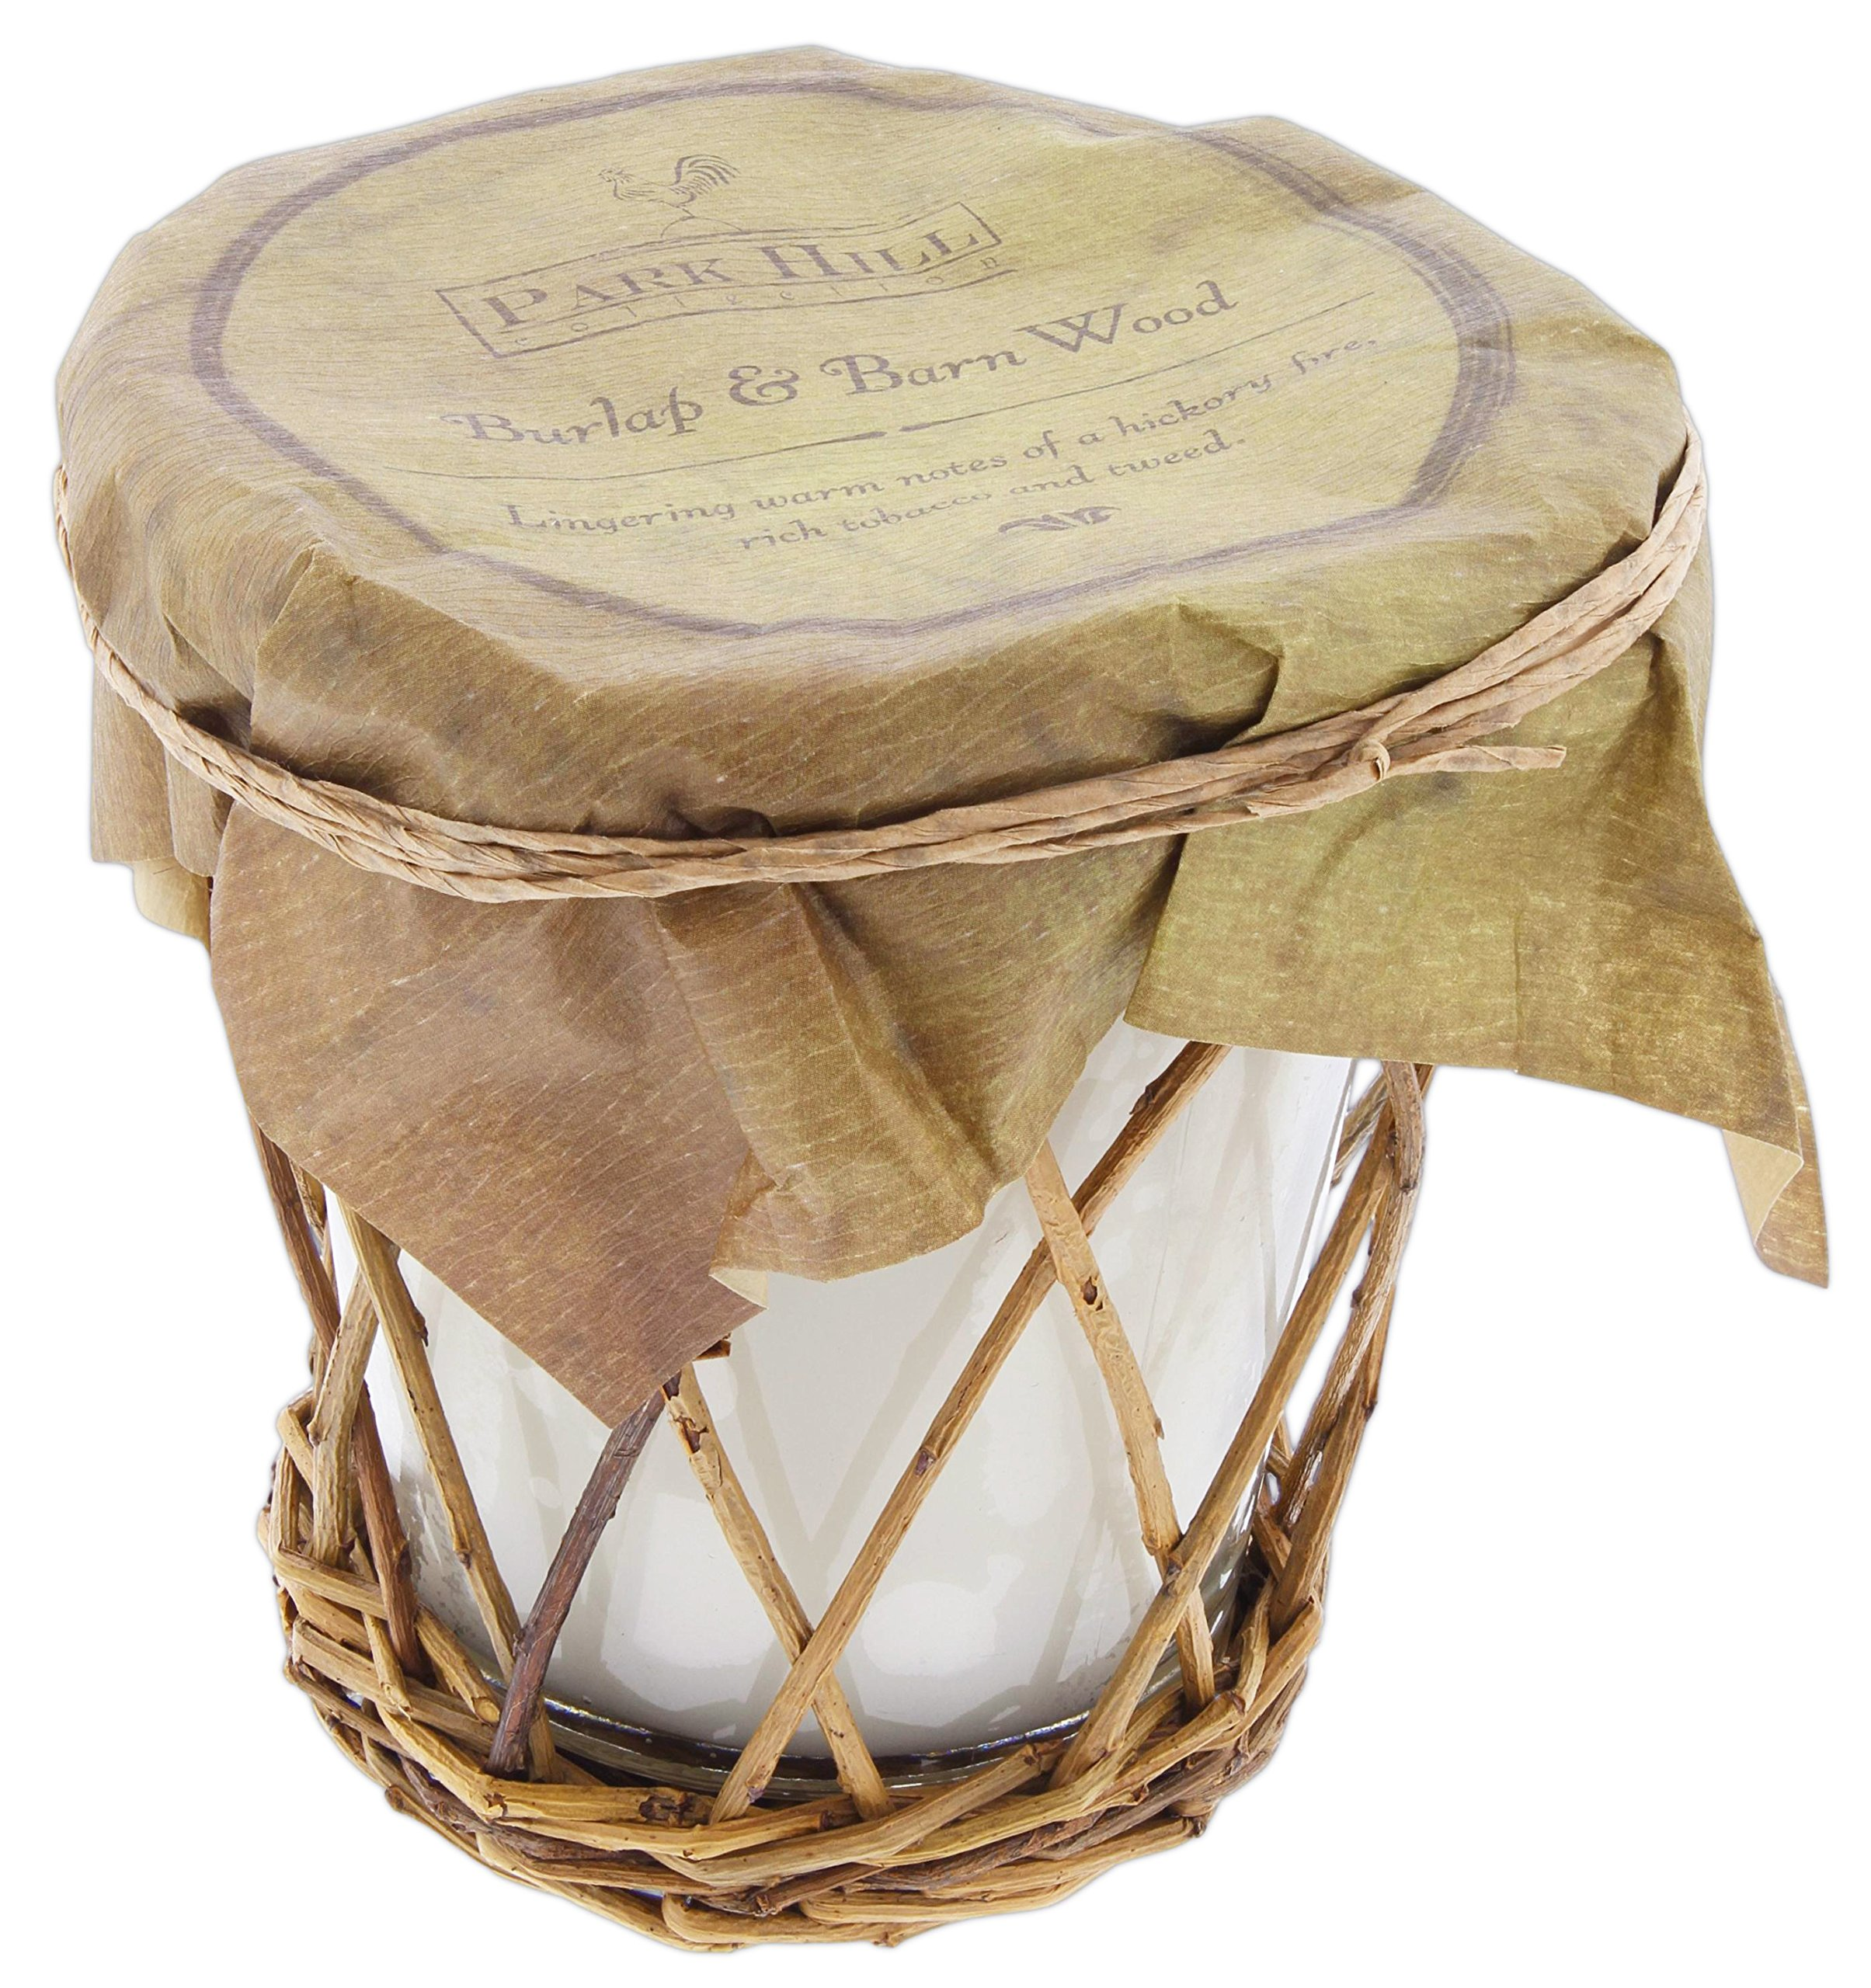 Park Hill Scented Candle ('Burlap & Barn Wood' Warm Notes of Hickory, Tobacco & Tweed)